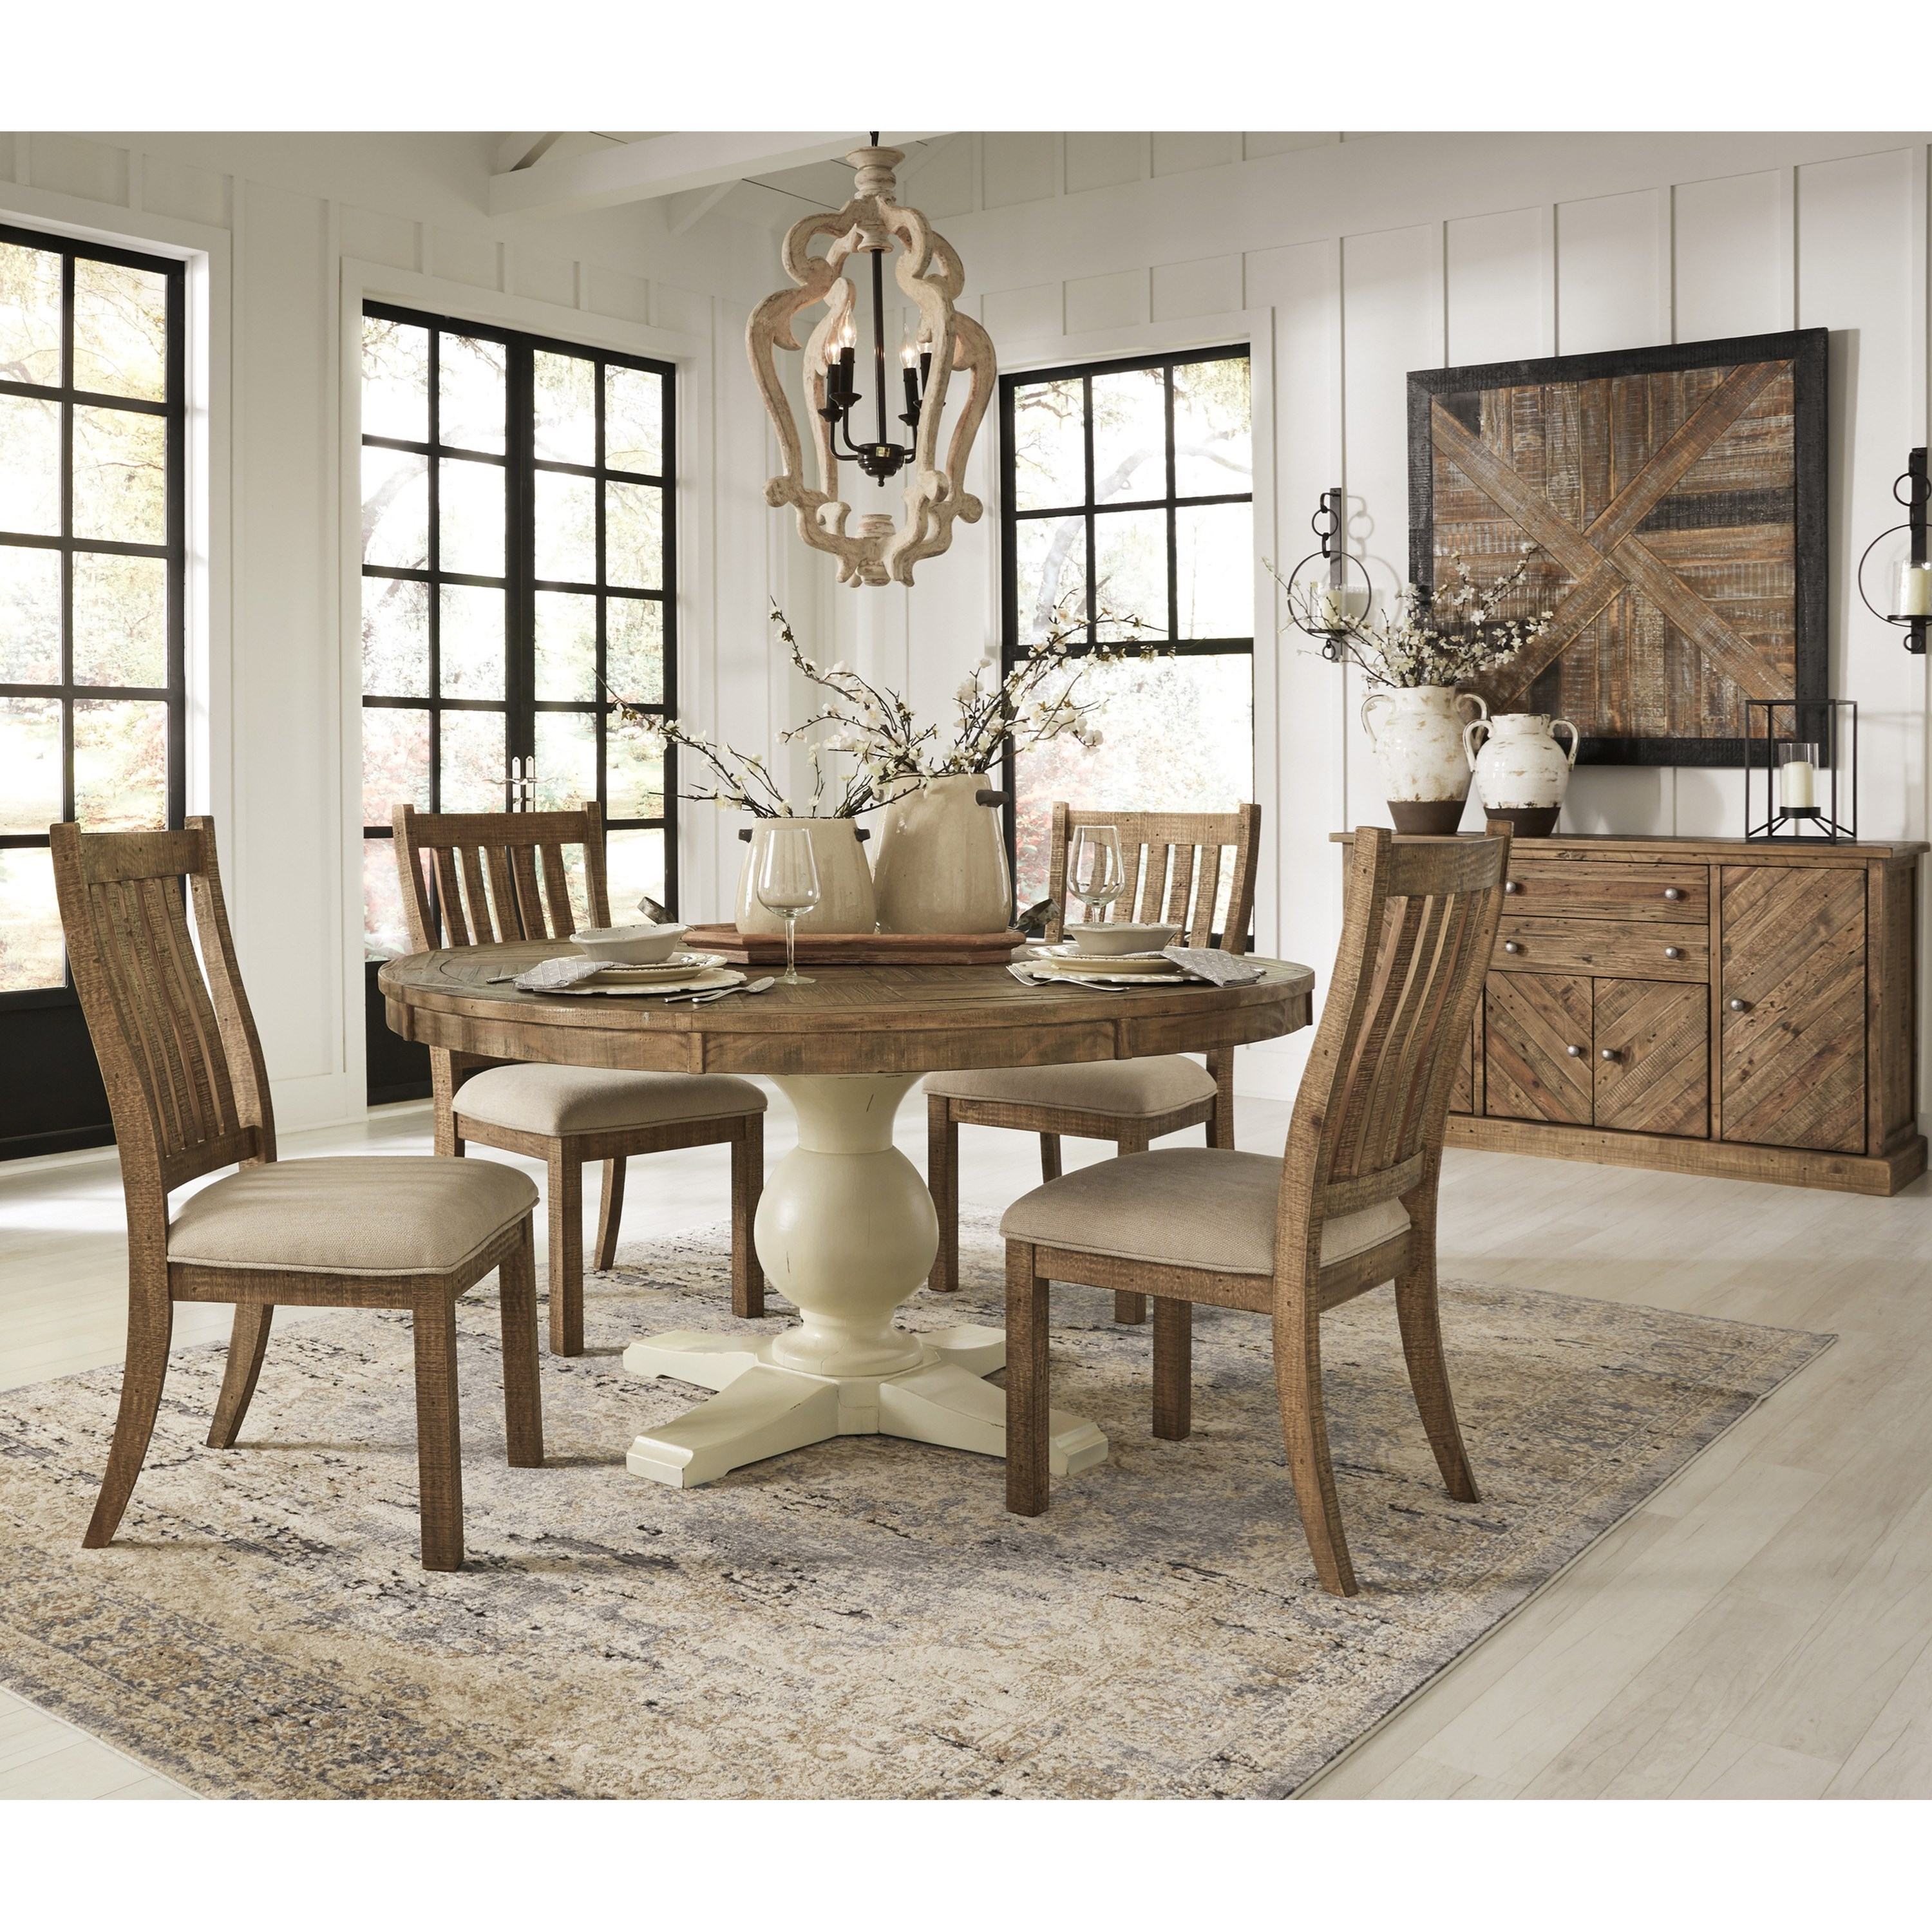 Grindleburg Casual Dining Room Group by Signature Design by Ashley at Value City Furniture